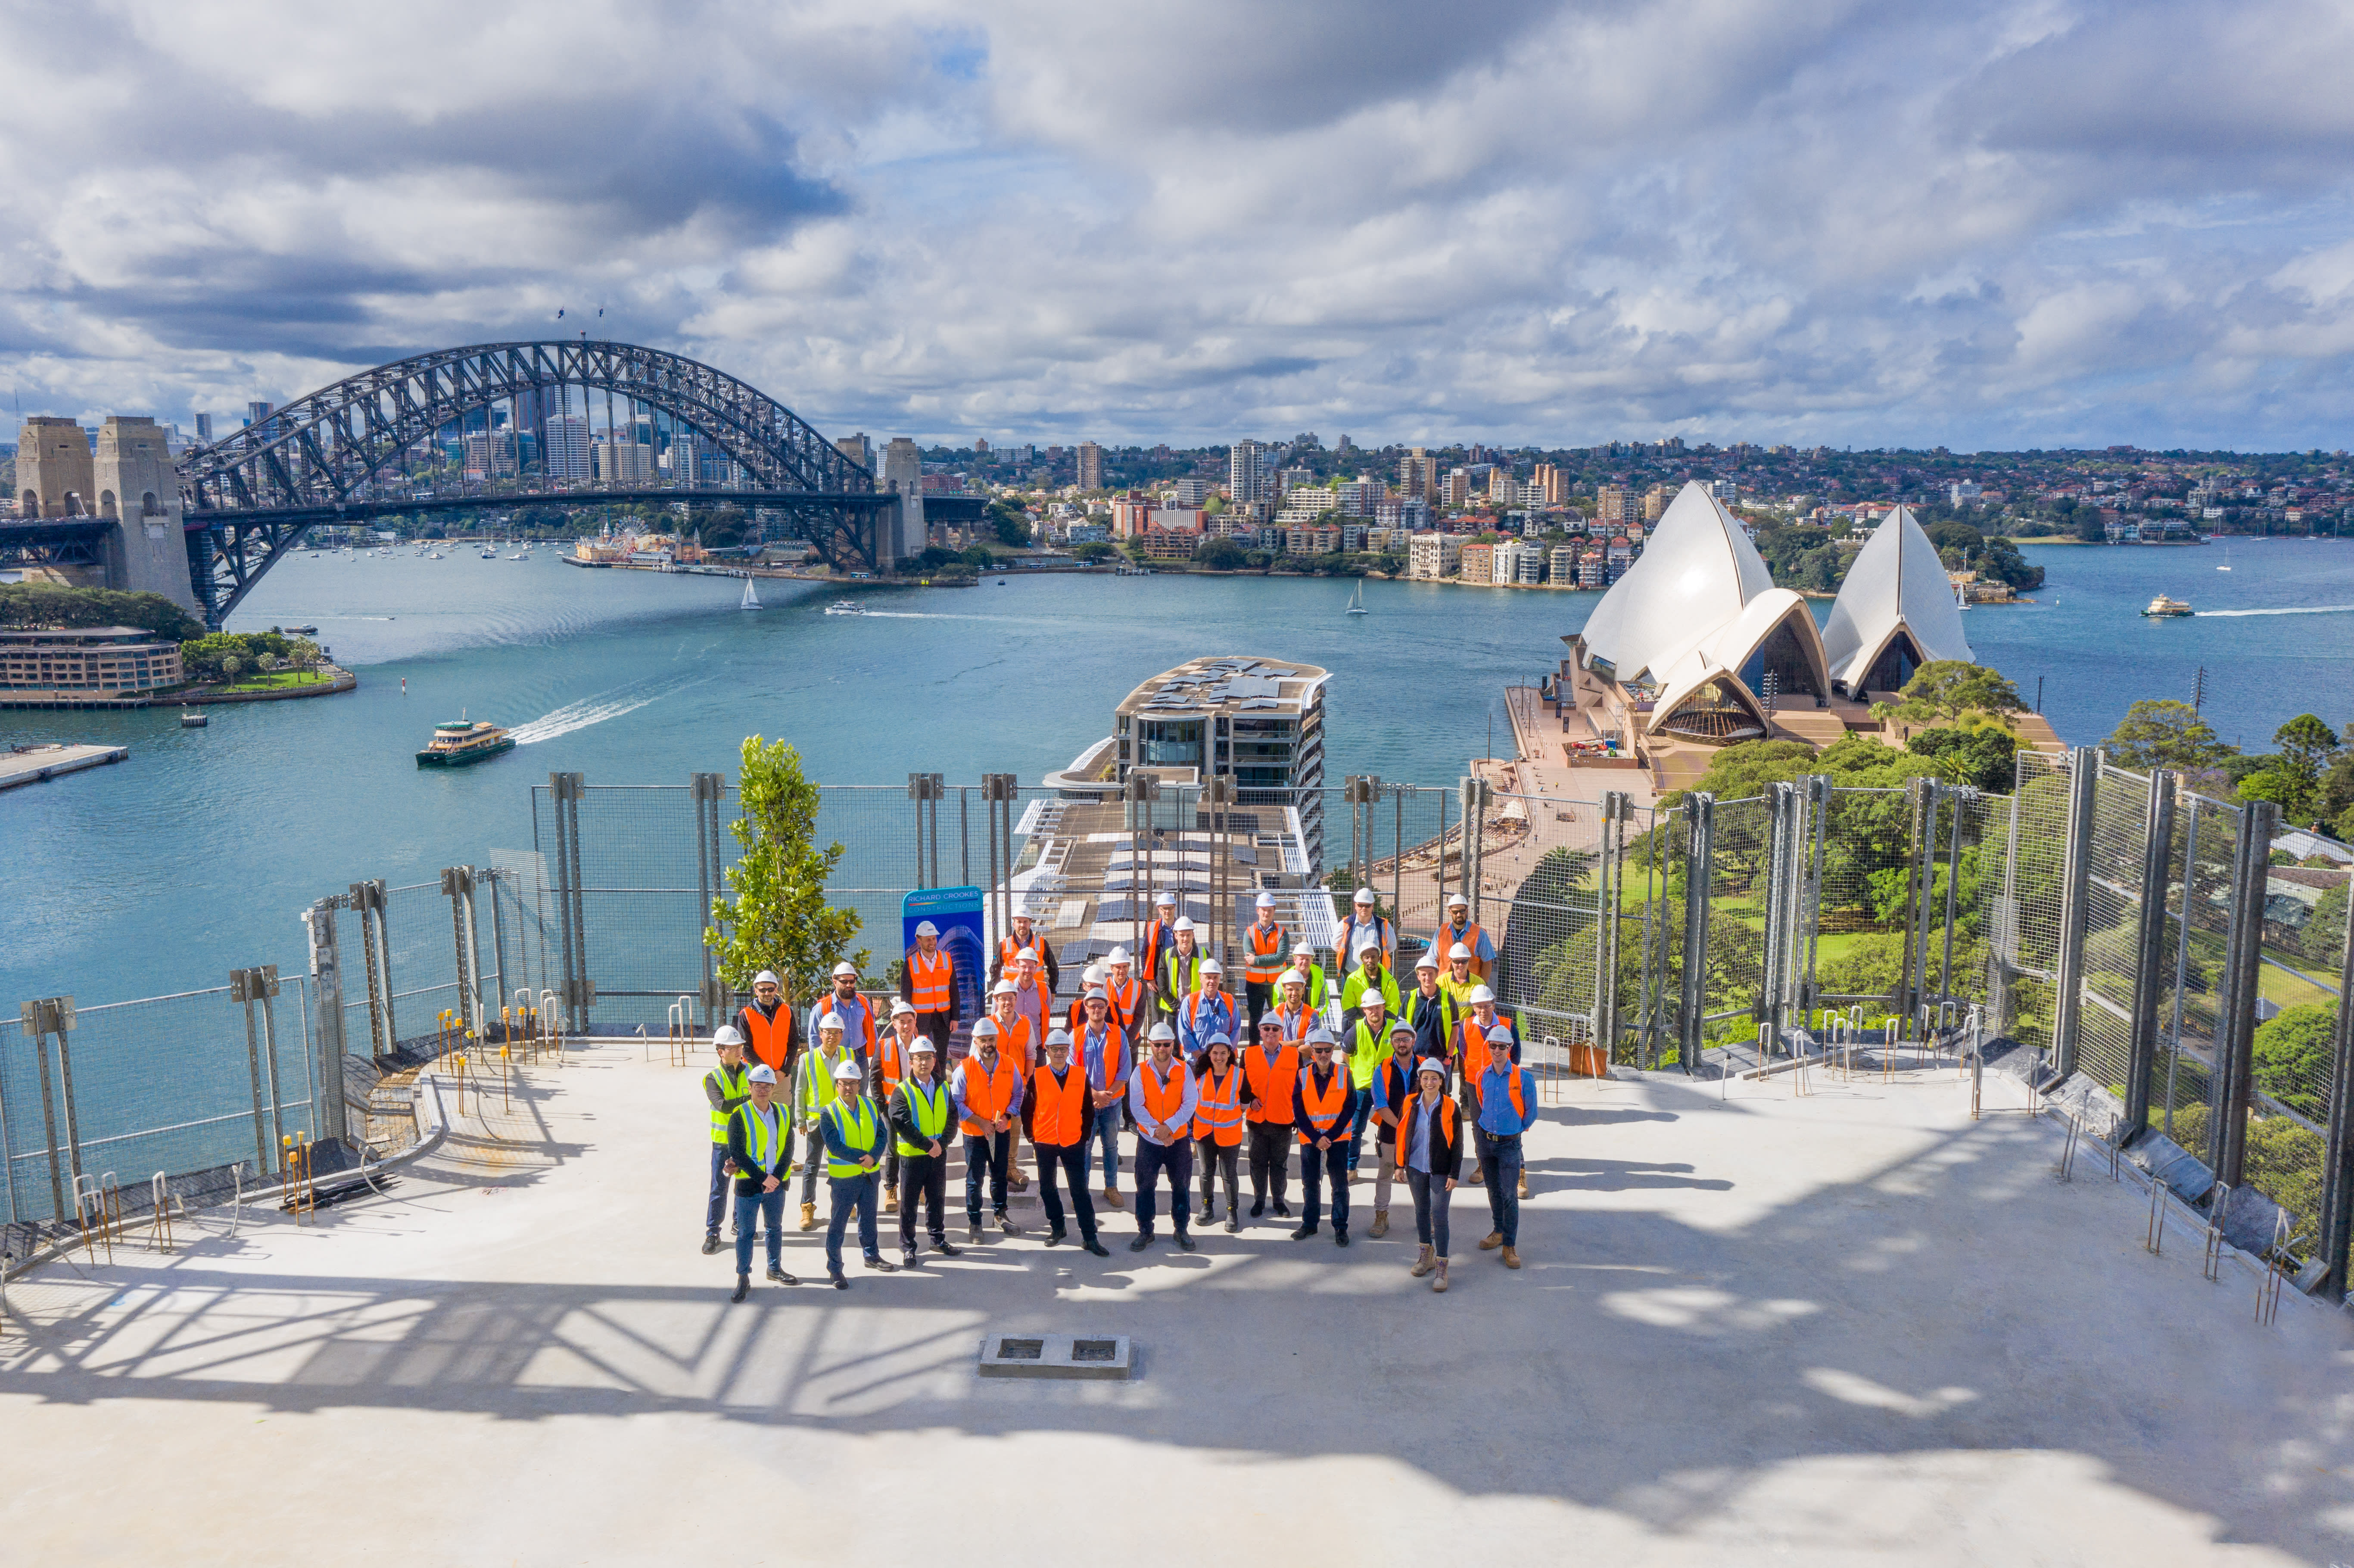 Opera Residences: Sydney's $600m residential building that sold out in 2 hours has now topped out